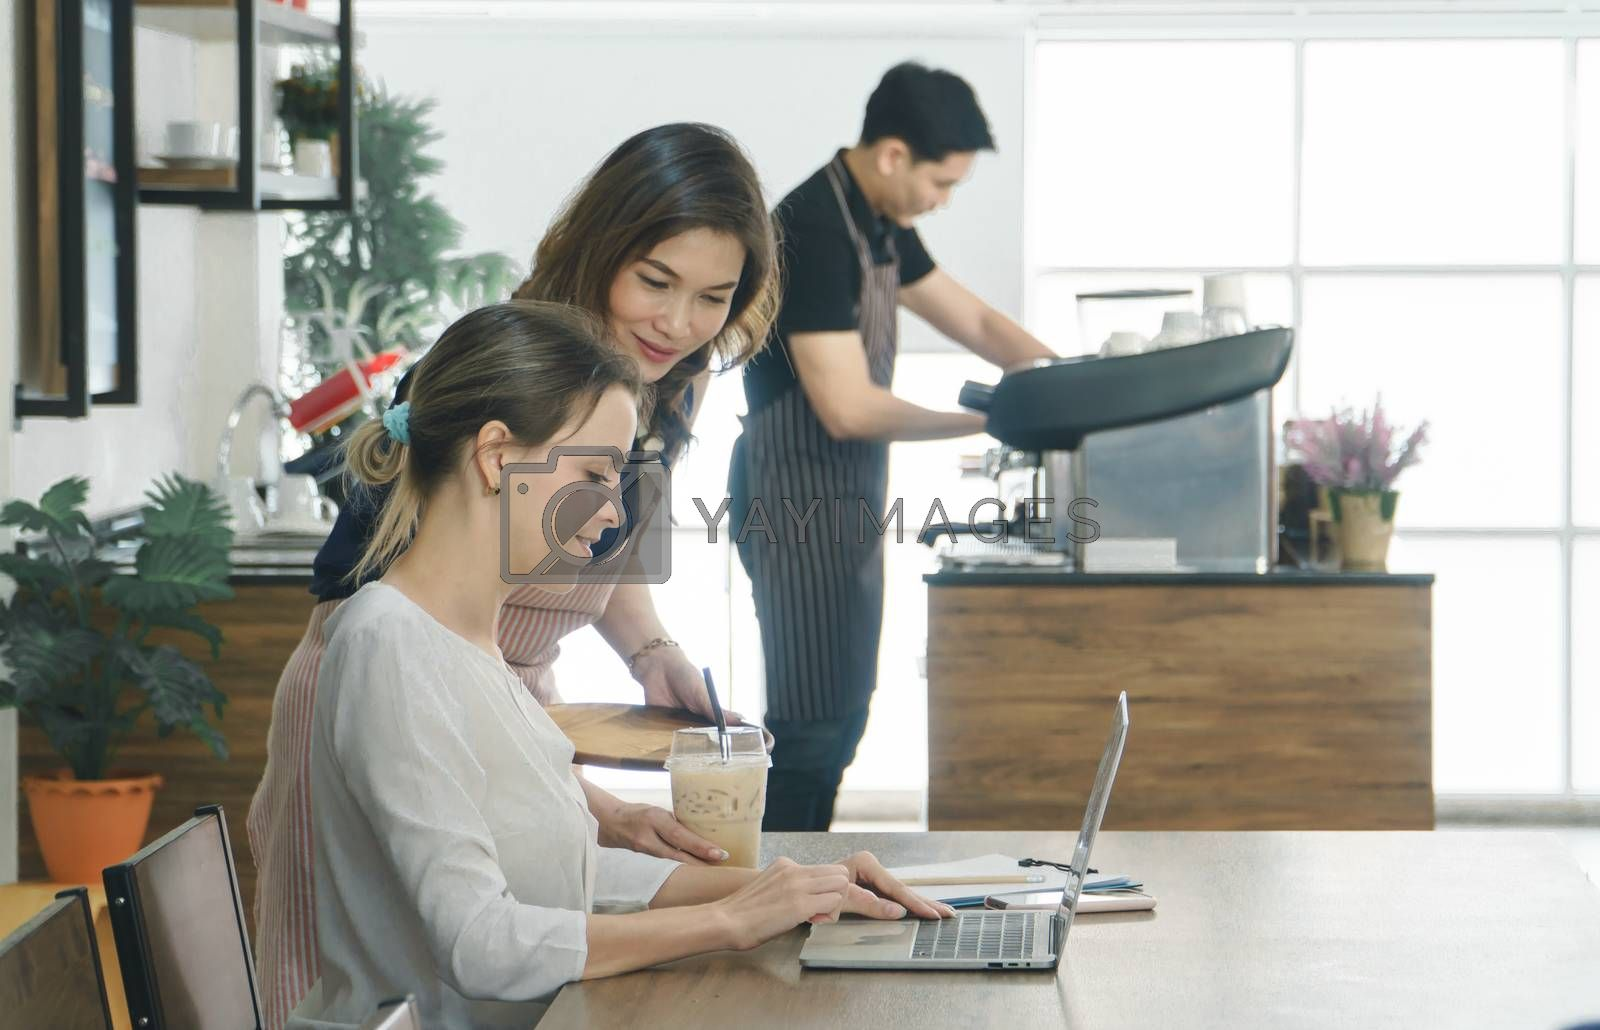 Beautiful young Caucasian women Using a laptop in the cafe. Asian female waitress serving espresso customers in a coffee shop. Background barista is preparing to make a drink according to order